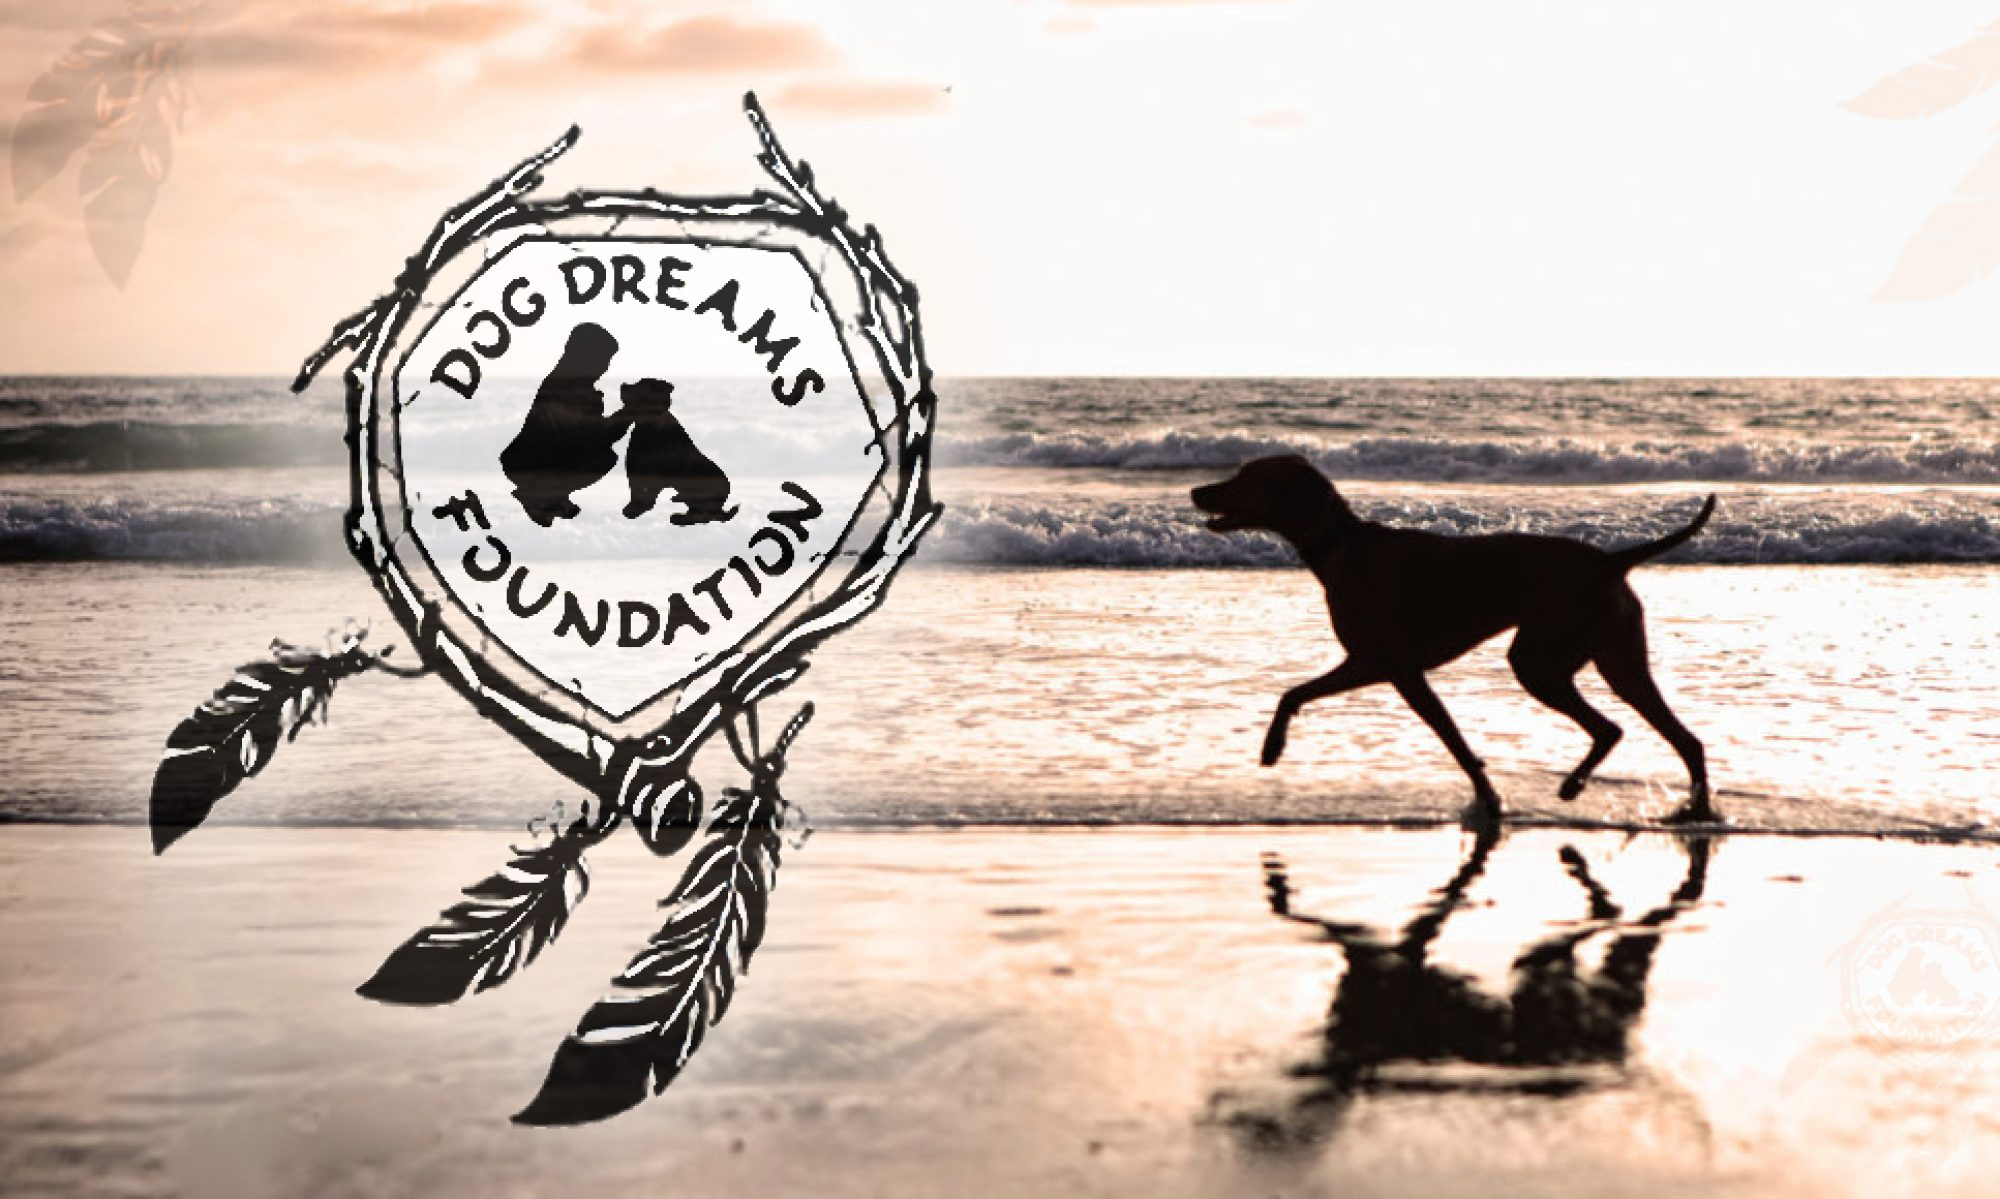 Dog Dreams Foundation